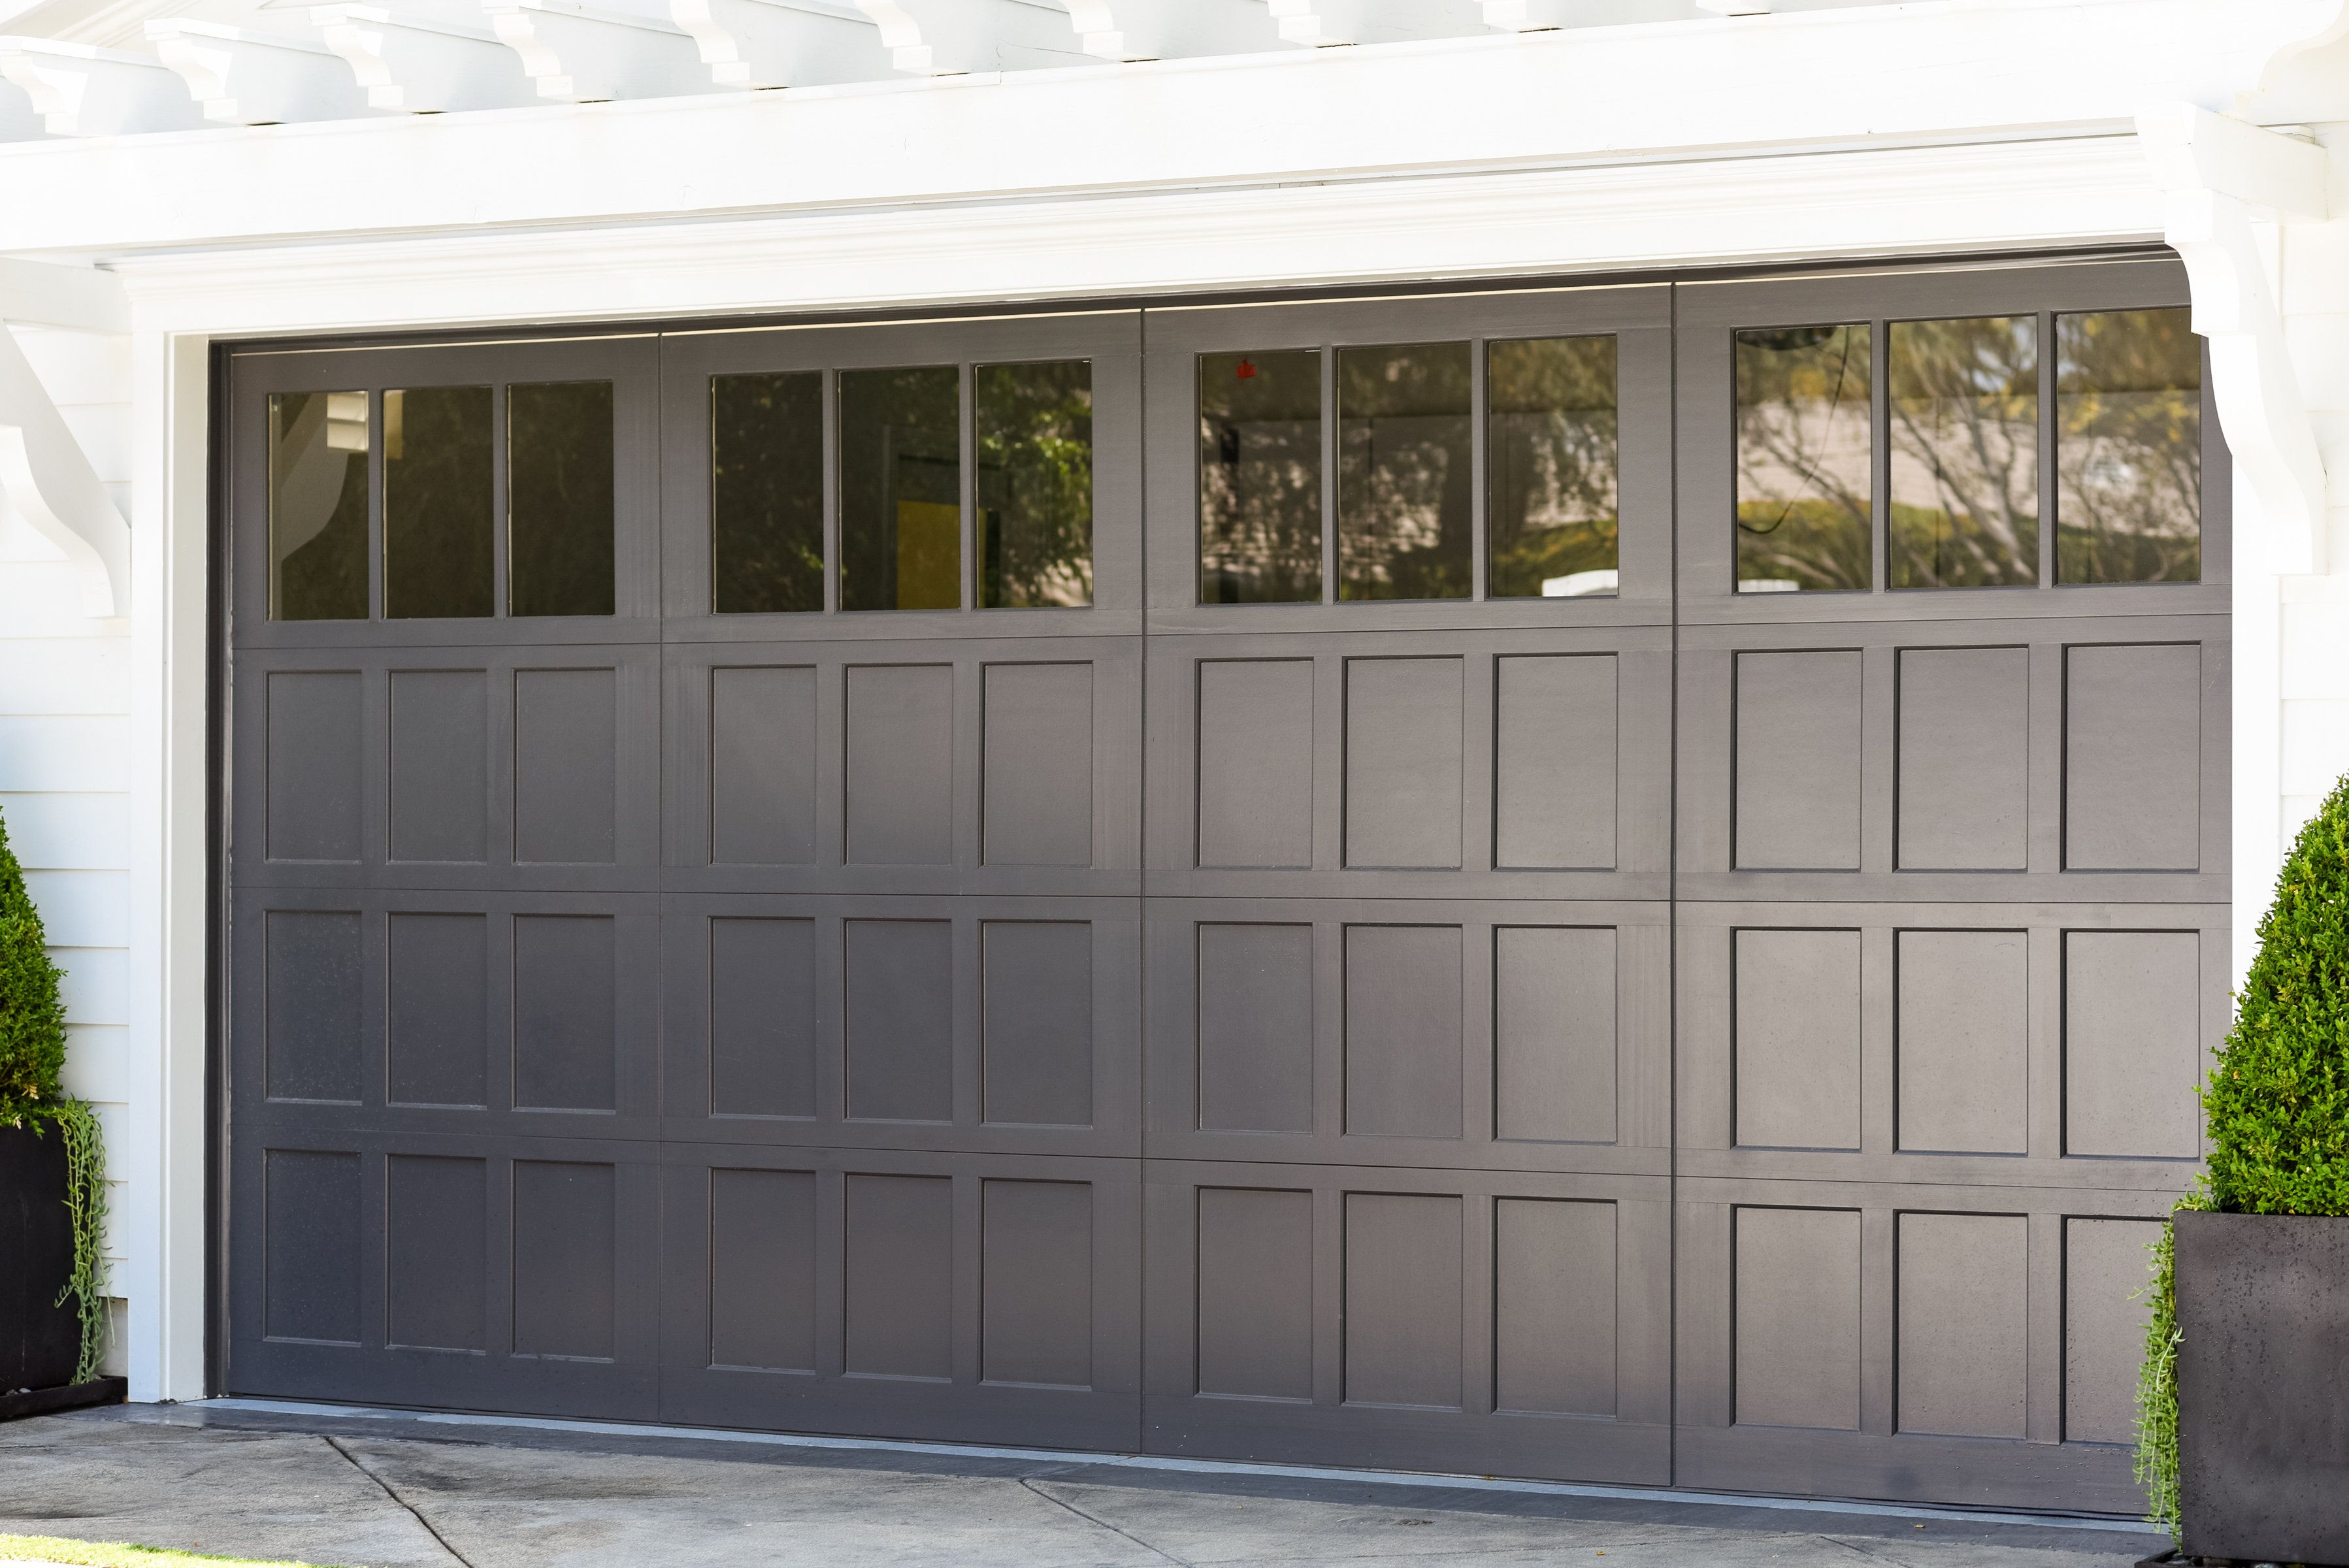 Daytona Steel Metal Buildings Metal Garages Metal Buildings Steel Buildings For Sale